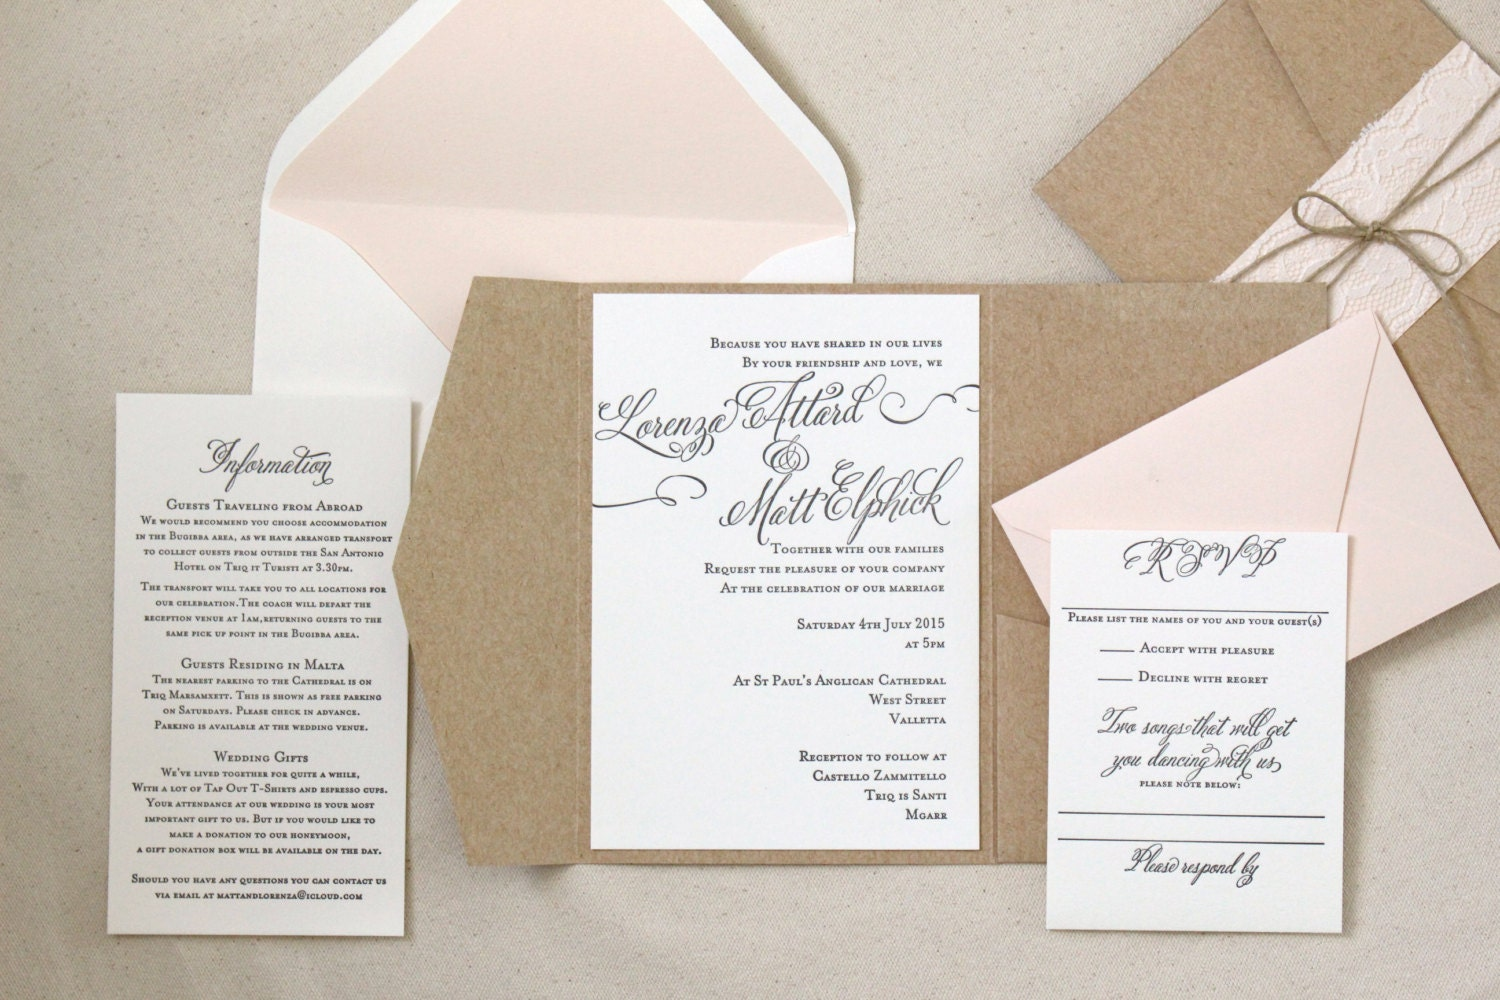 Wedding Invitation Suite Templates: The Rosebud Suite Letterpress Wedding Invitation Suite